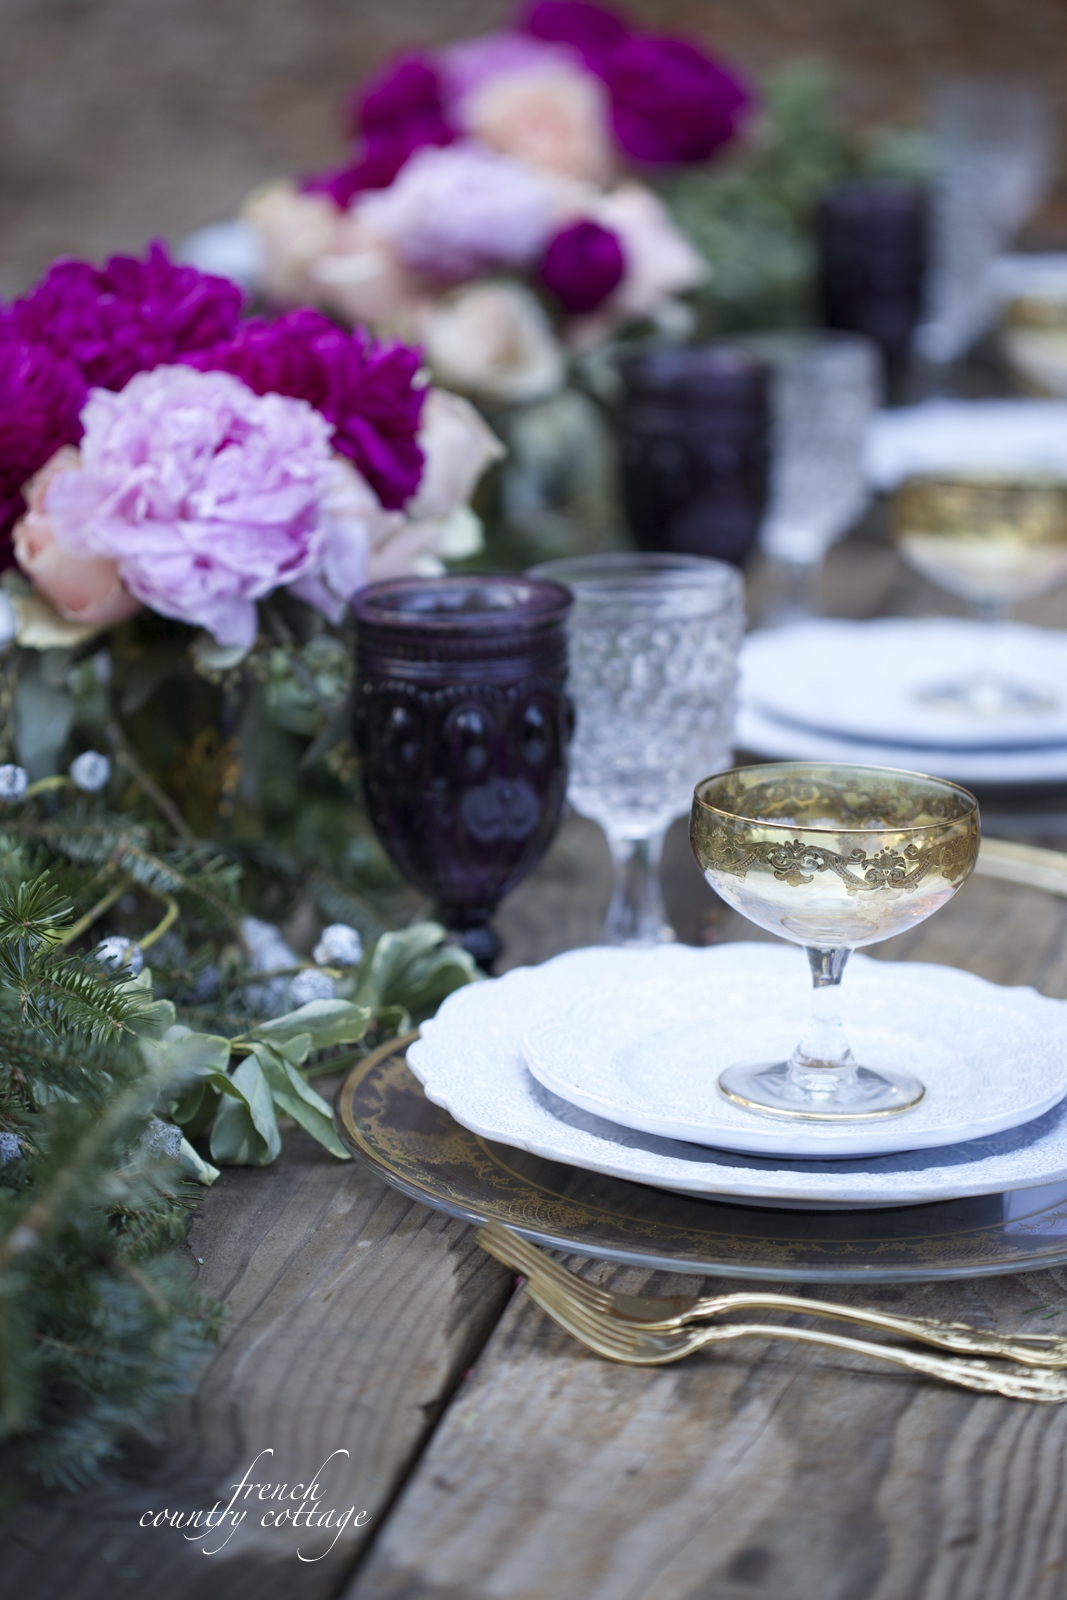 Romantic Holiday Table setting - FRENCH COUNTRY COTTAGE